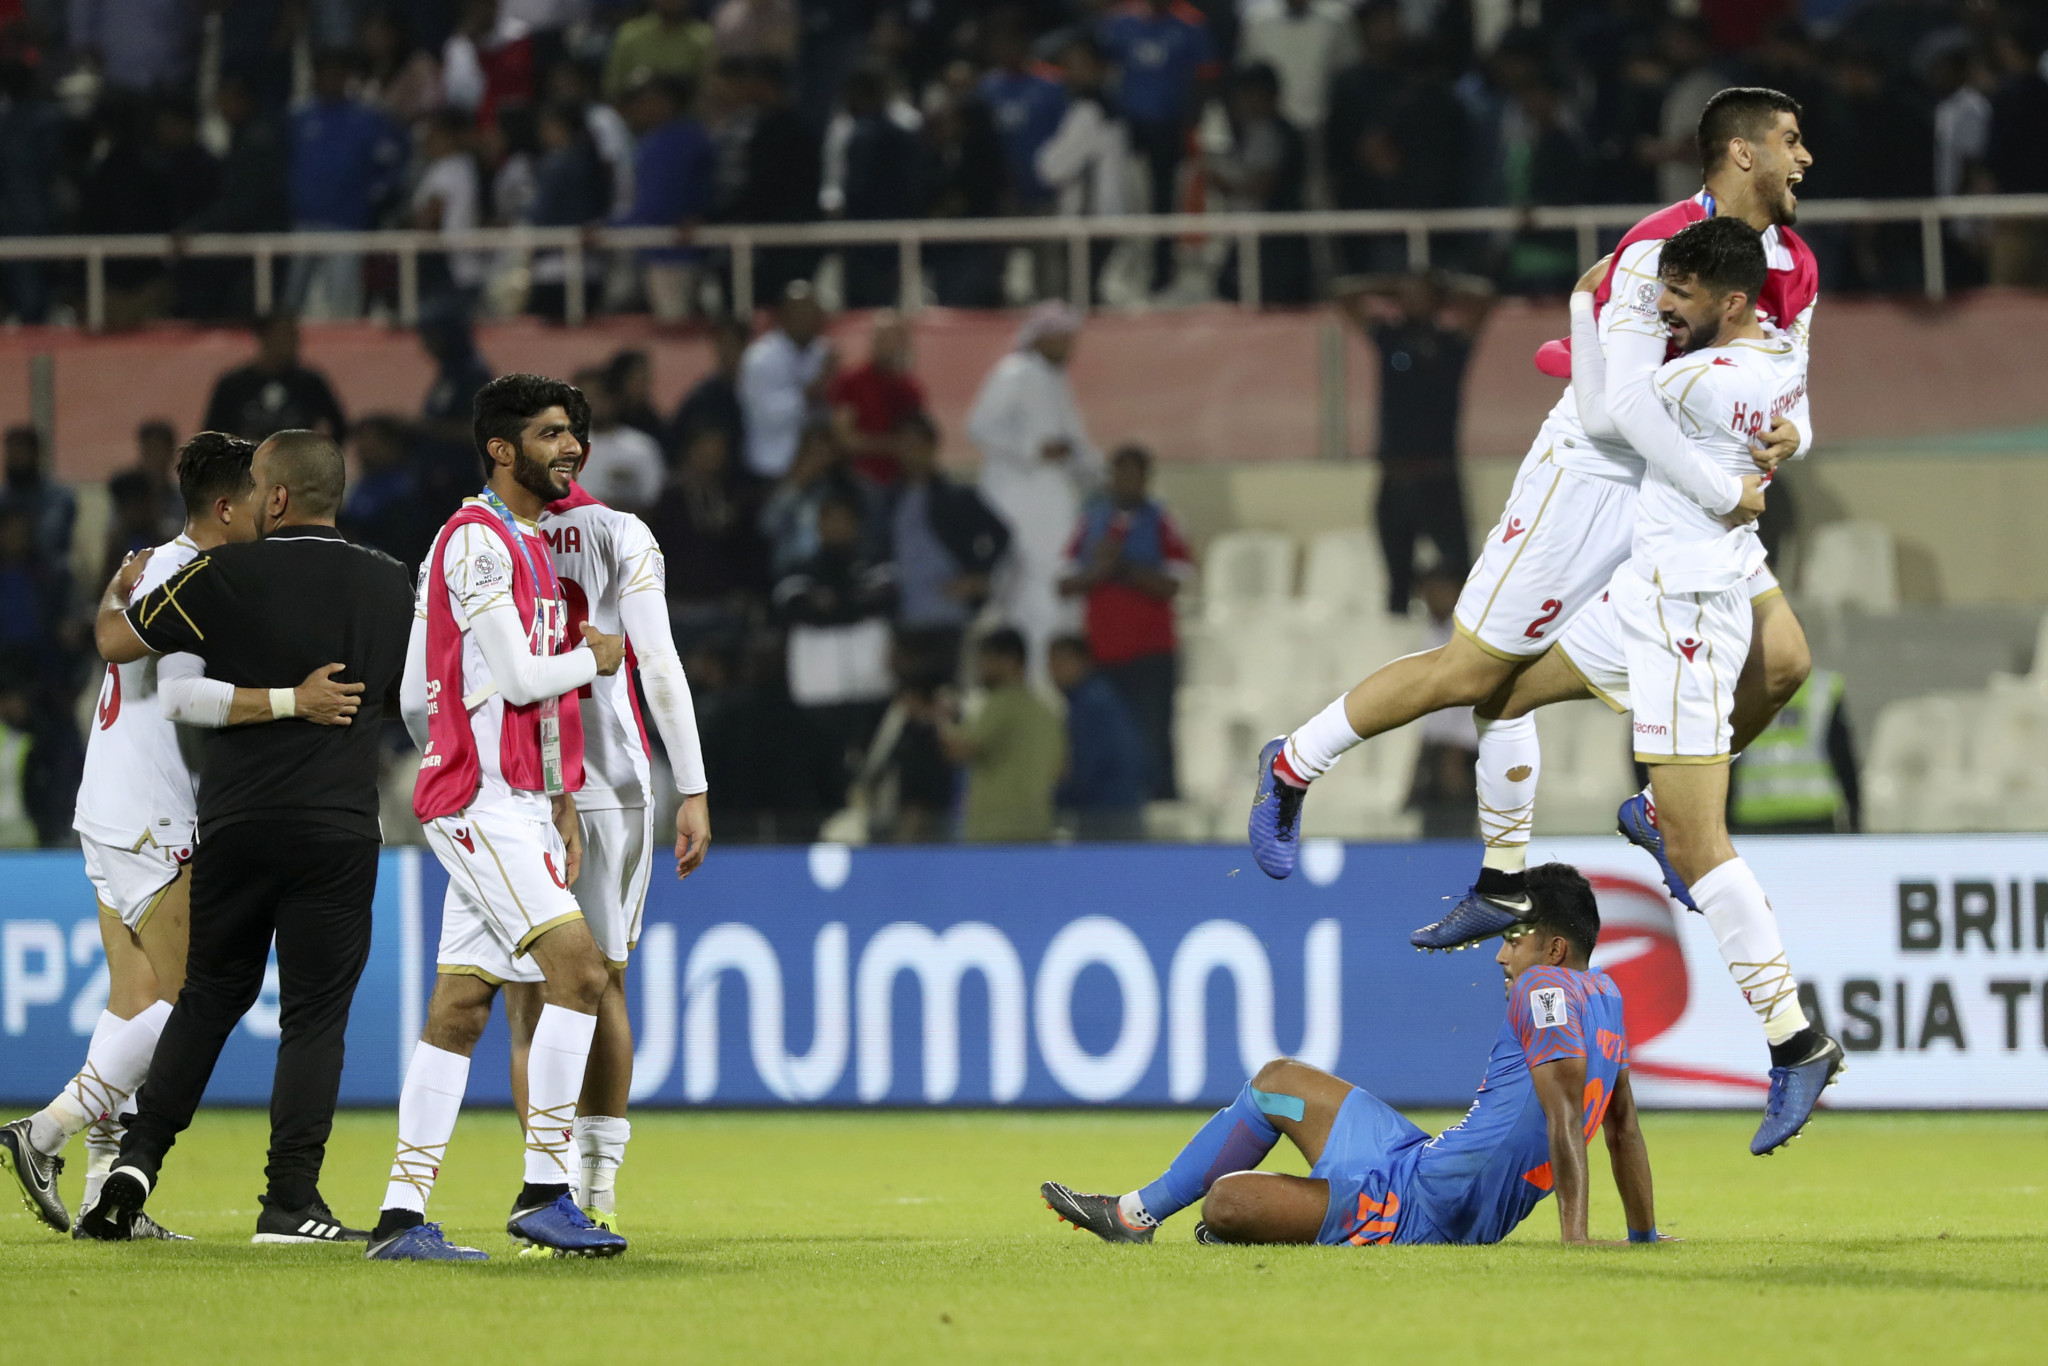 A 91st minute penalty for Bahrain has seen India knocked out of the 2019 Asian Cup ©Getty Images